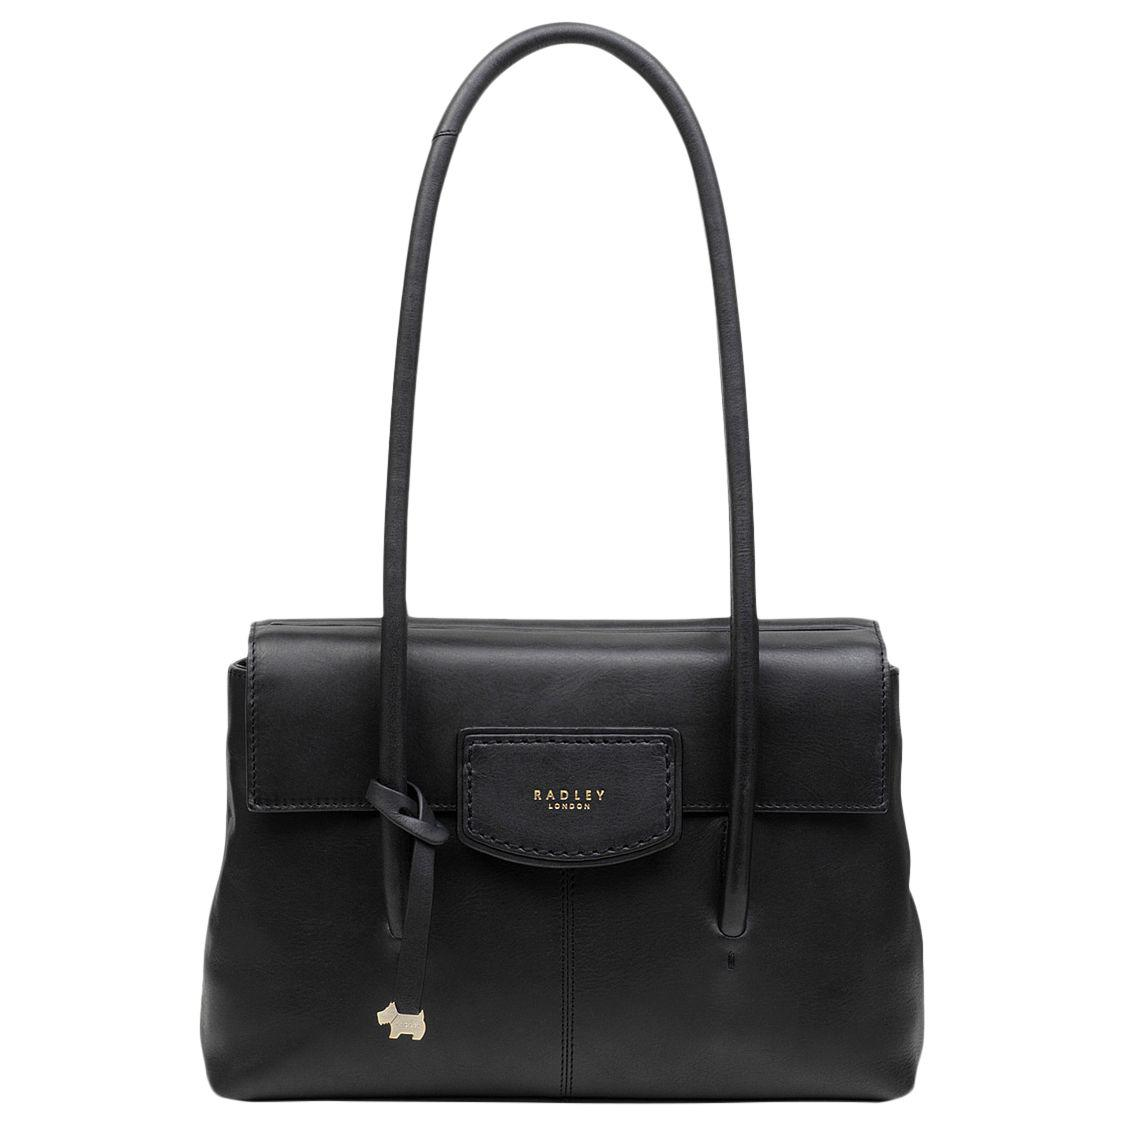 7ecf36e19d8 Radley. Women s Black Burnham Beaches Leather Medium Tote Bag. £185 From John  Lewis and Partners